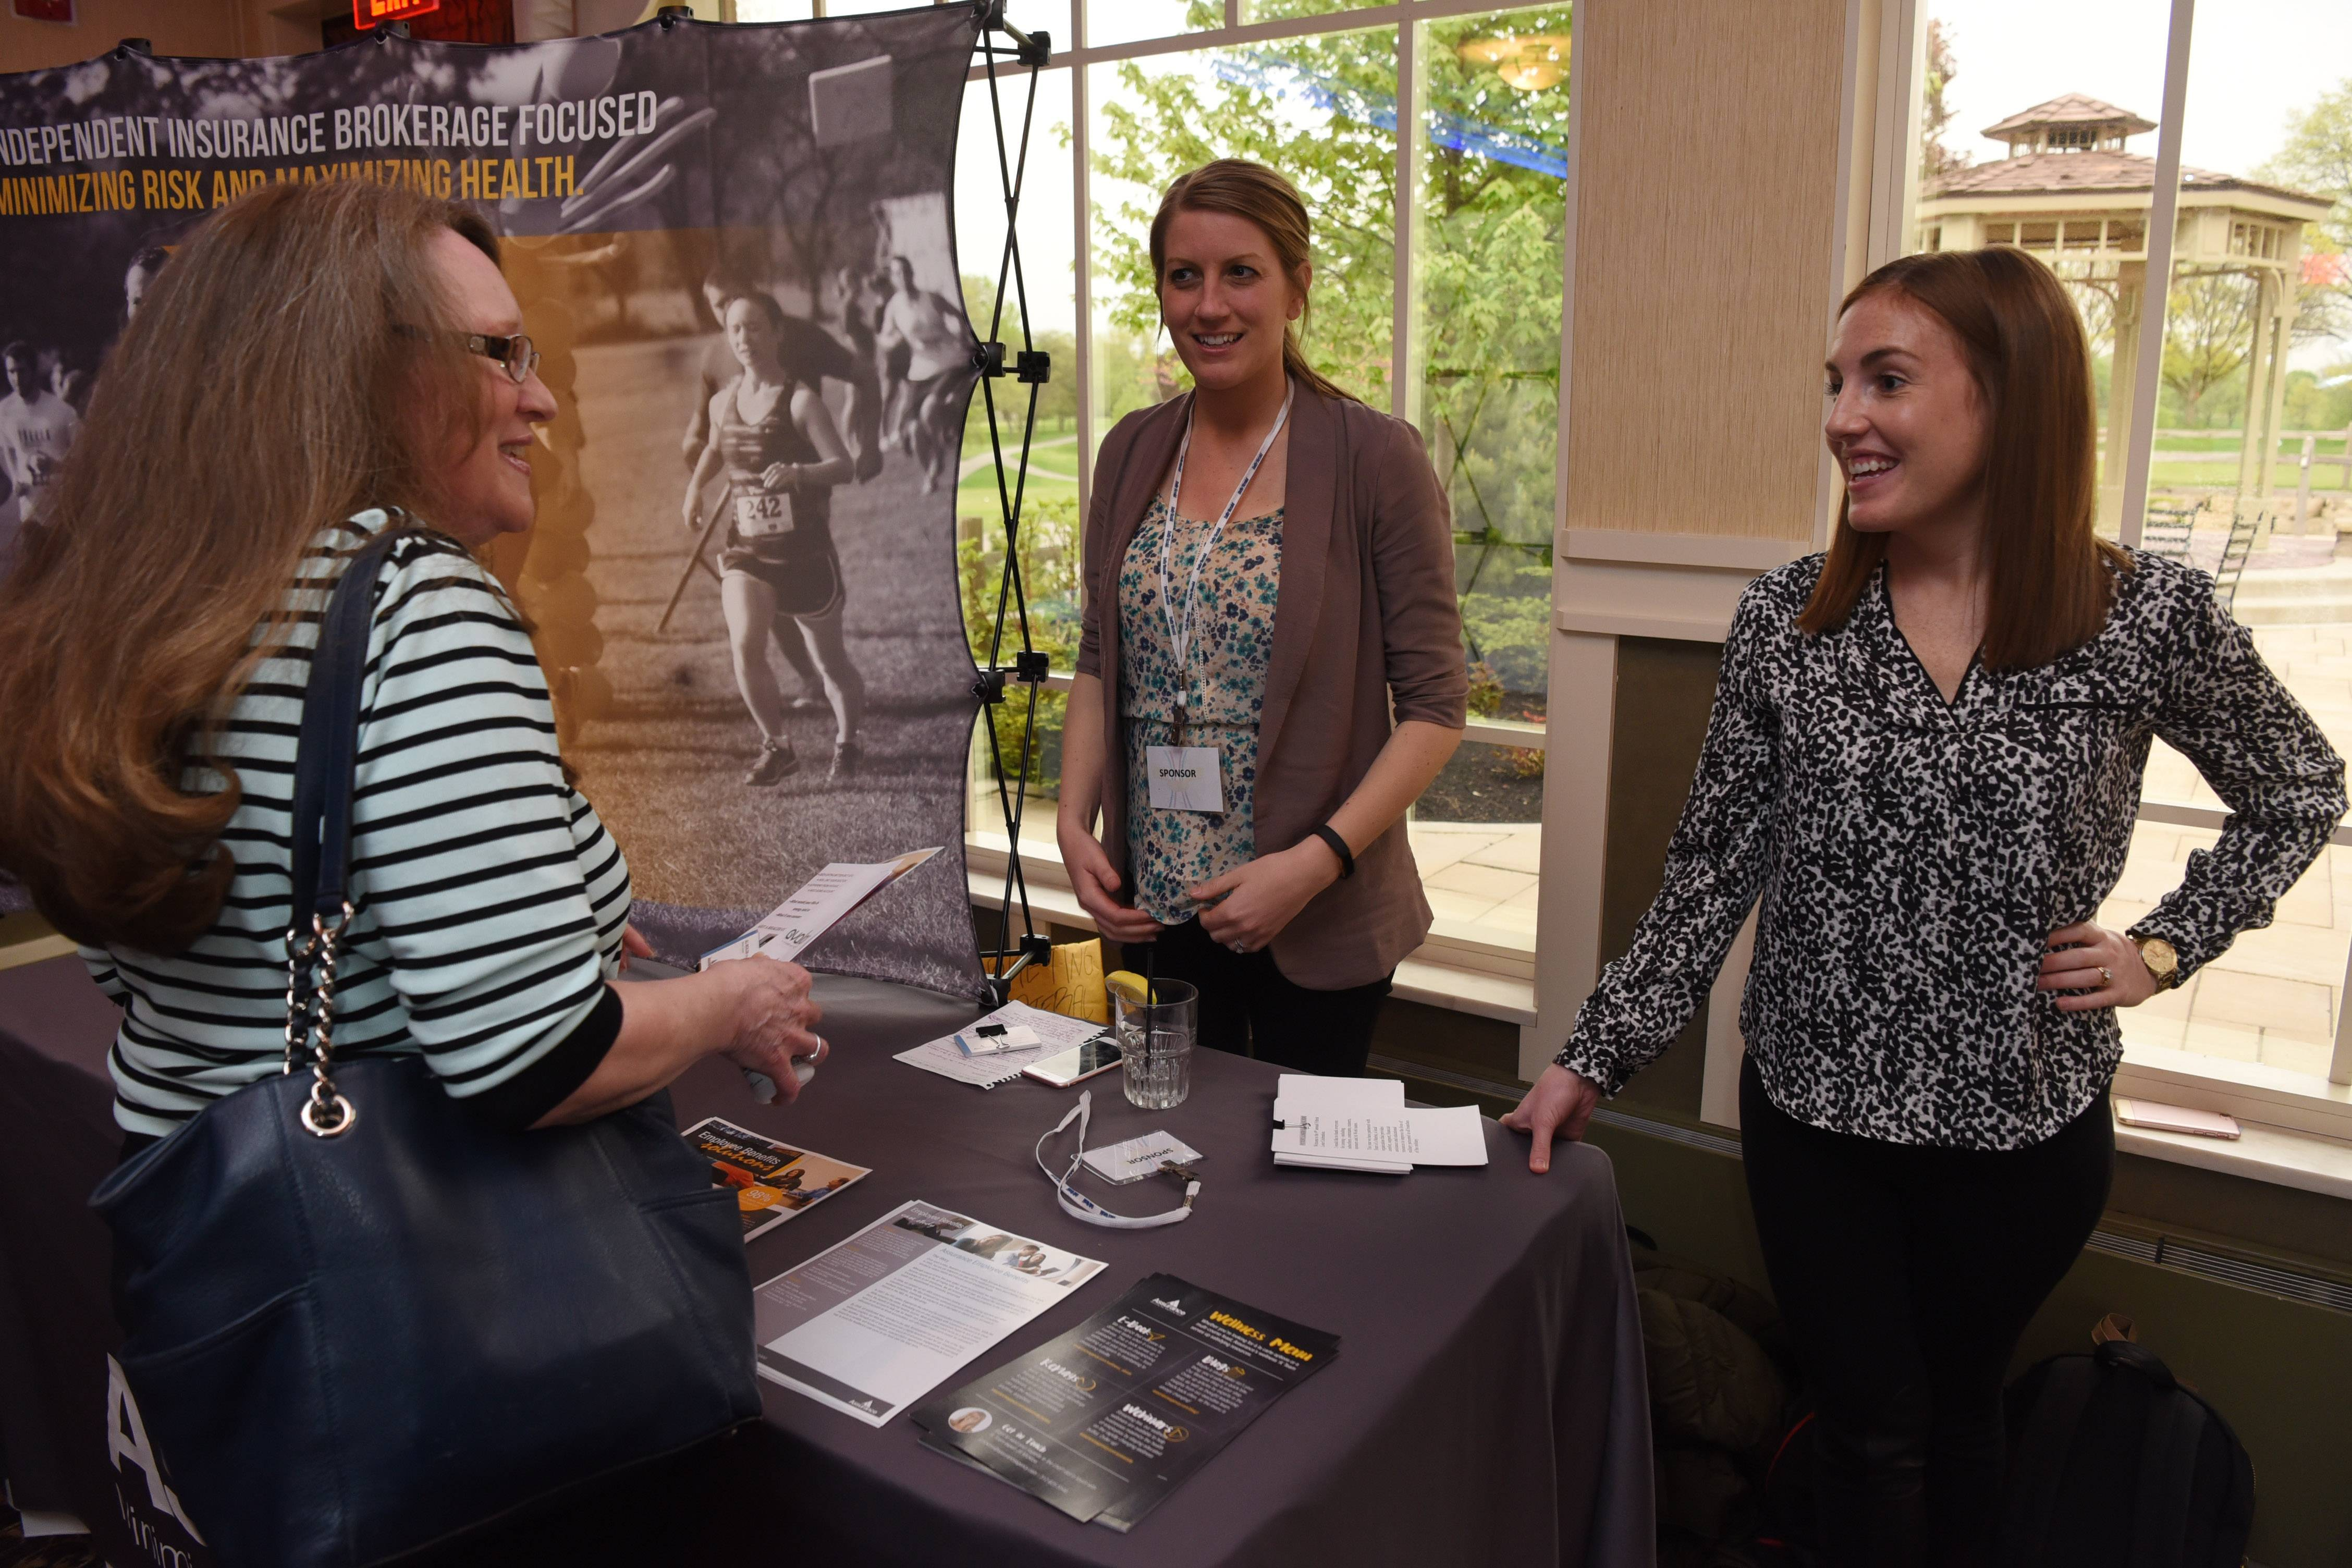 Laura Holze of Elgin, left, visits with Jill Micklow, middle and Megan Nester at the Assurance table during the finale of the Fittest Loser competition, held at Chandler's Banquets in Schaumburg Tuesday.